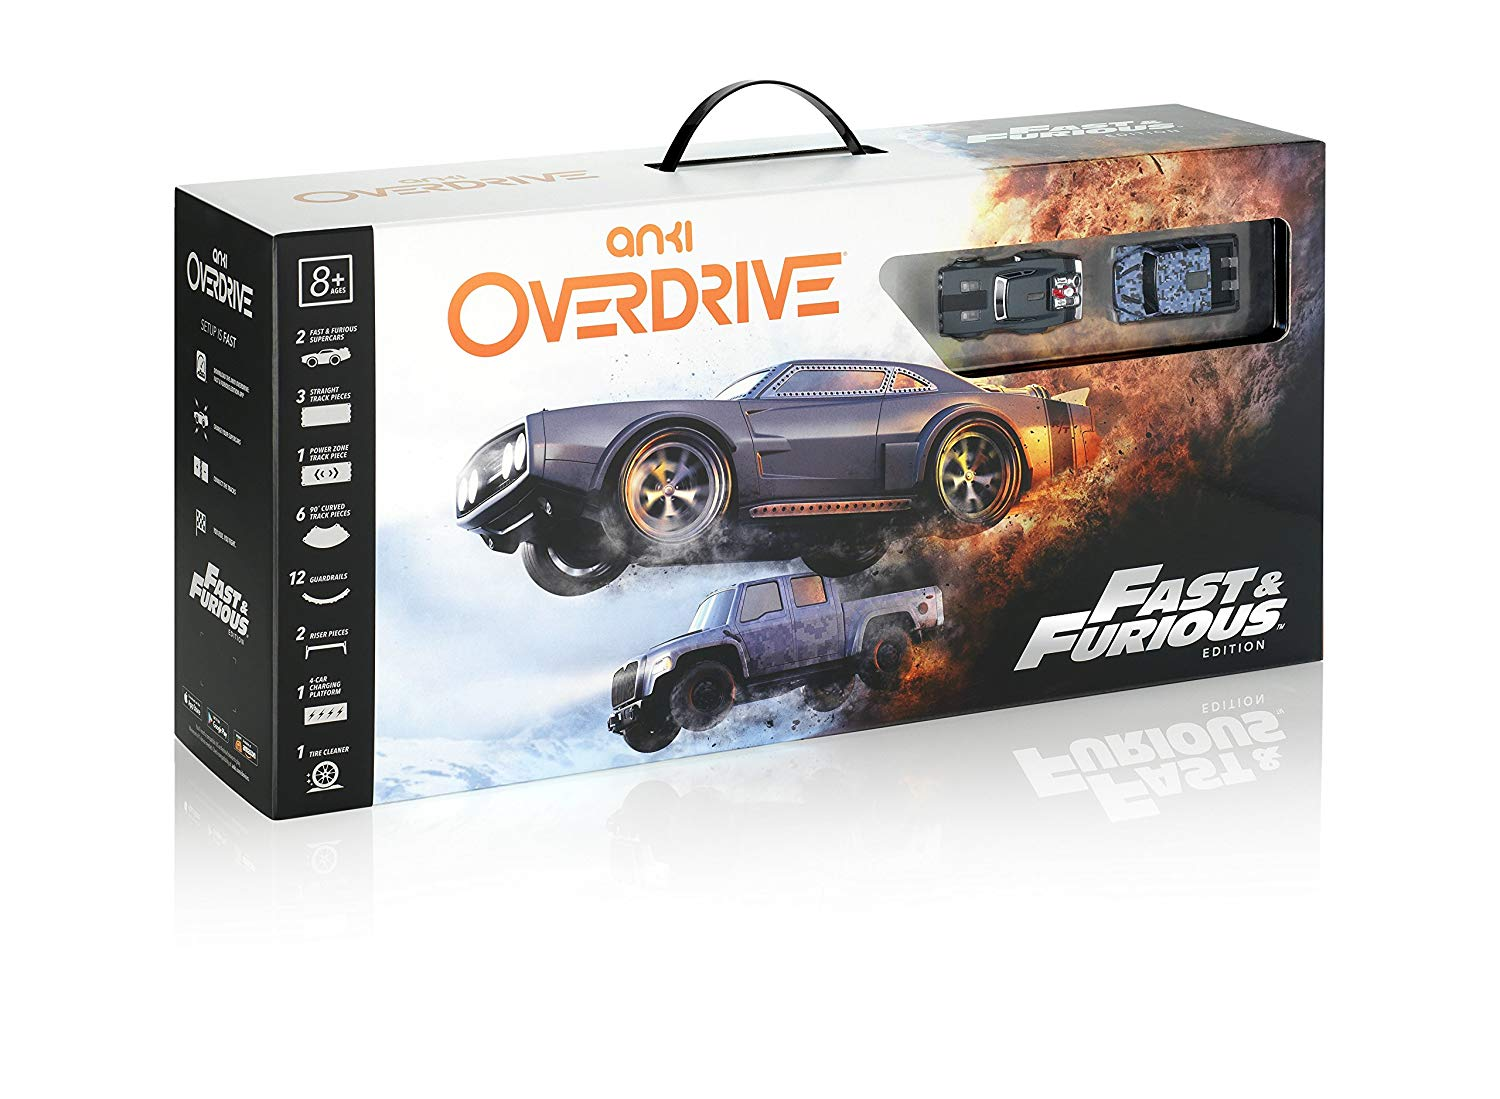 Anki Overdrive Fast & Furious Edition - App Remote controlled Racing Cars - $80.00 AC + Free Shipping